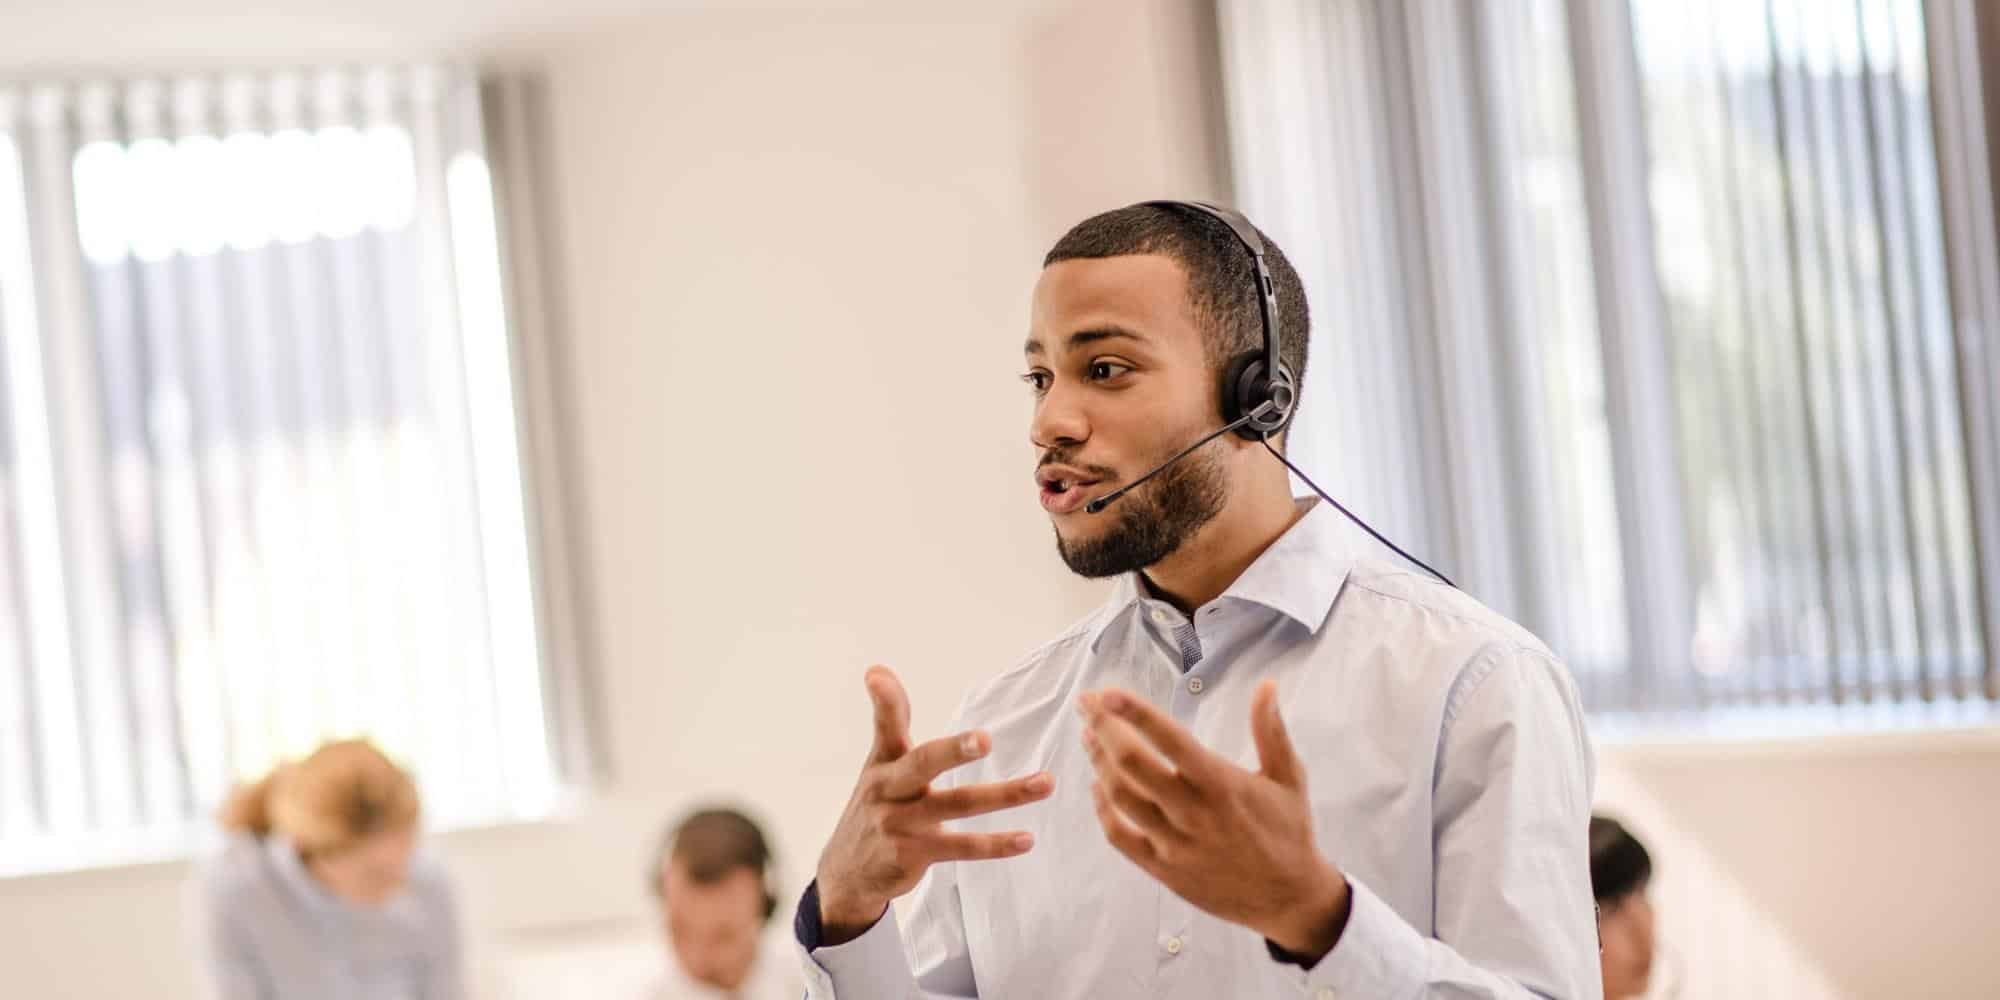 Man with headset standing and speaking